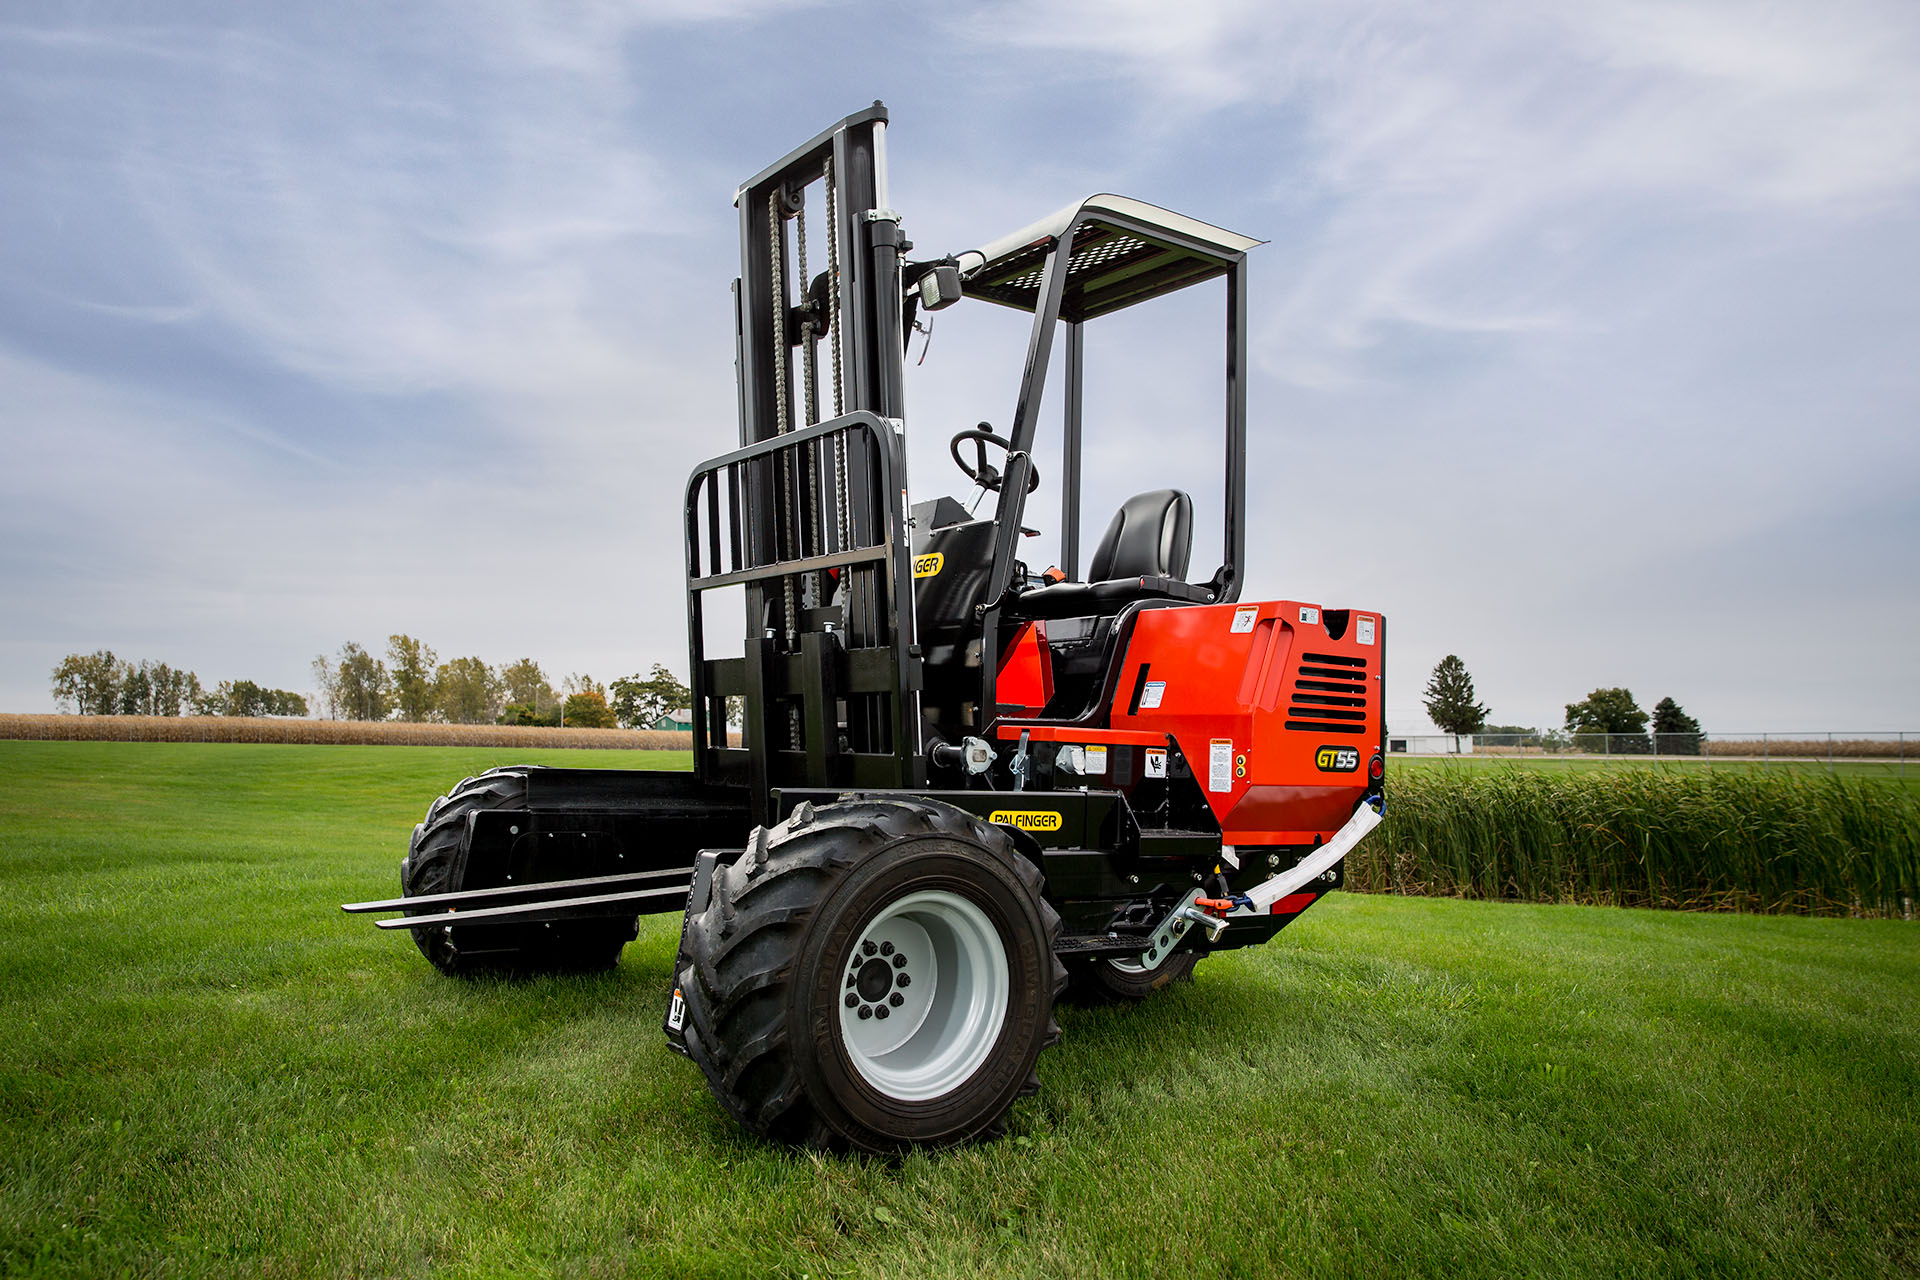 A commercial forklift product photo.